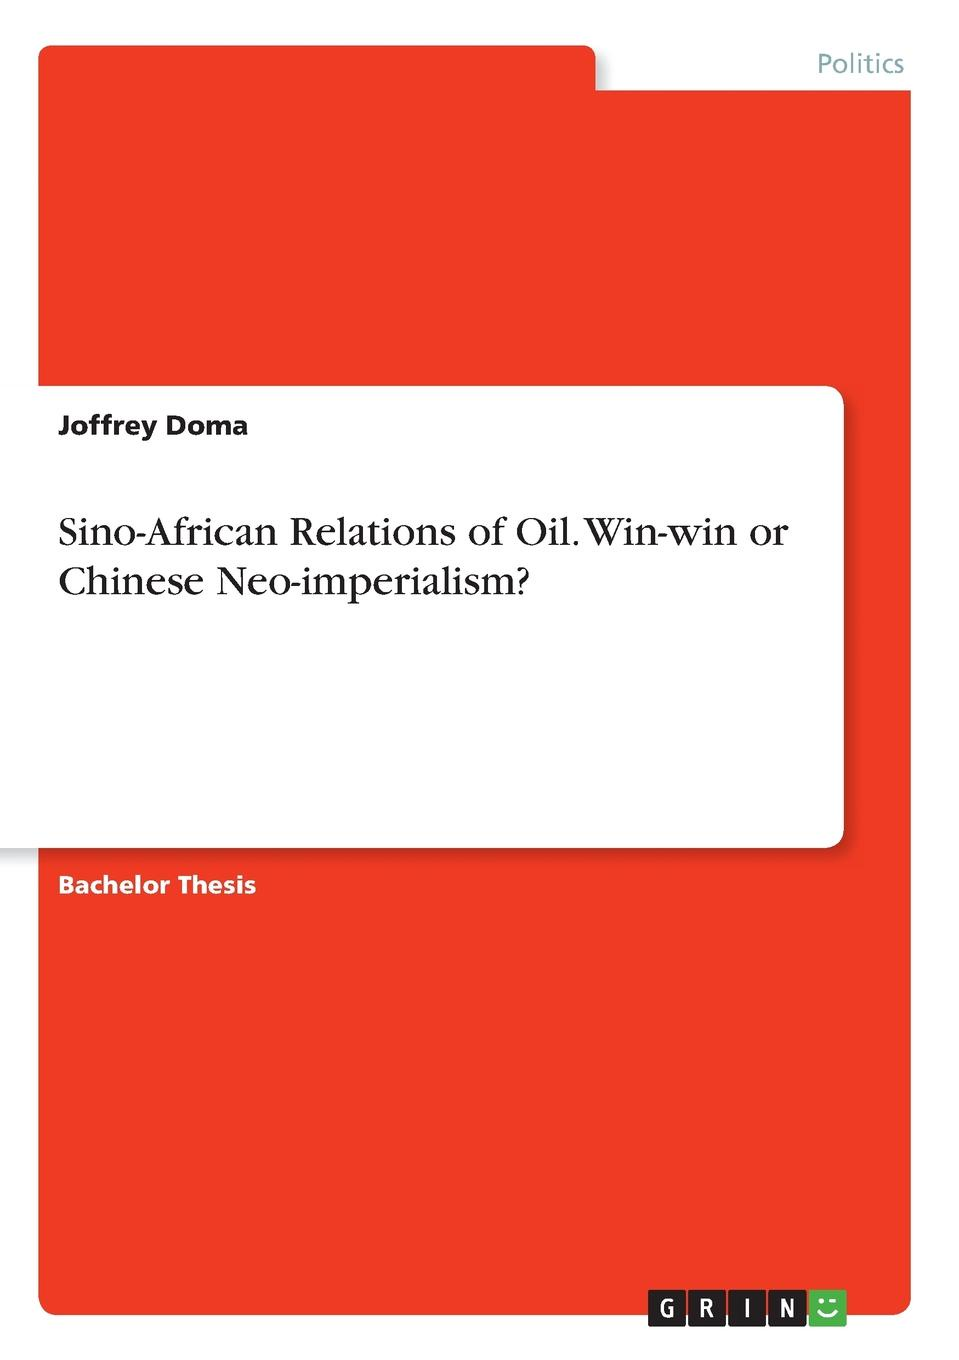 Joffrey Doma Sino-African Relations of Oil. Win-win or Chinese Neo-imperialism. waheeda rana sino indian relations a paradigm shift